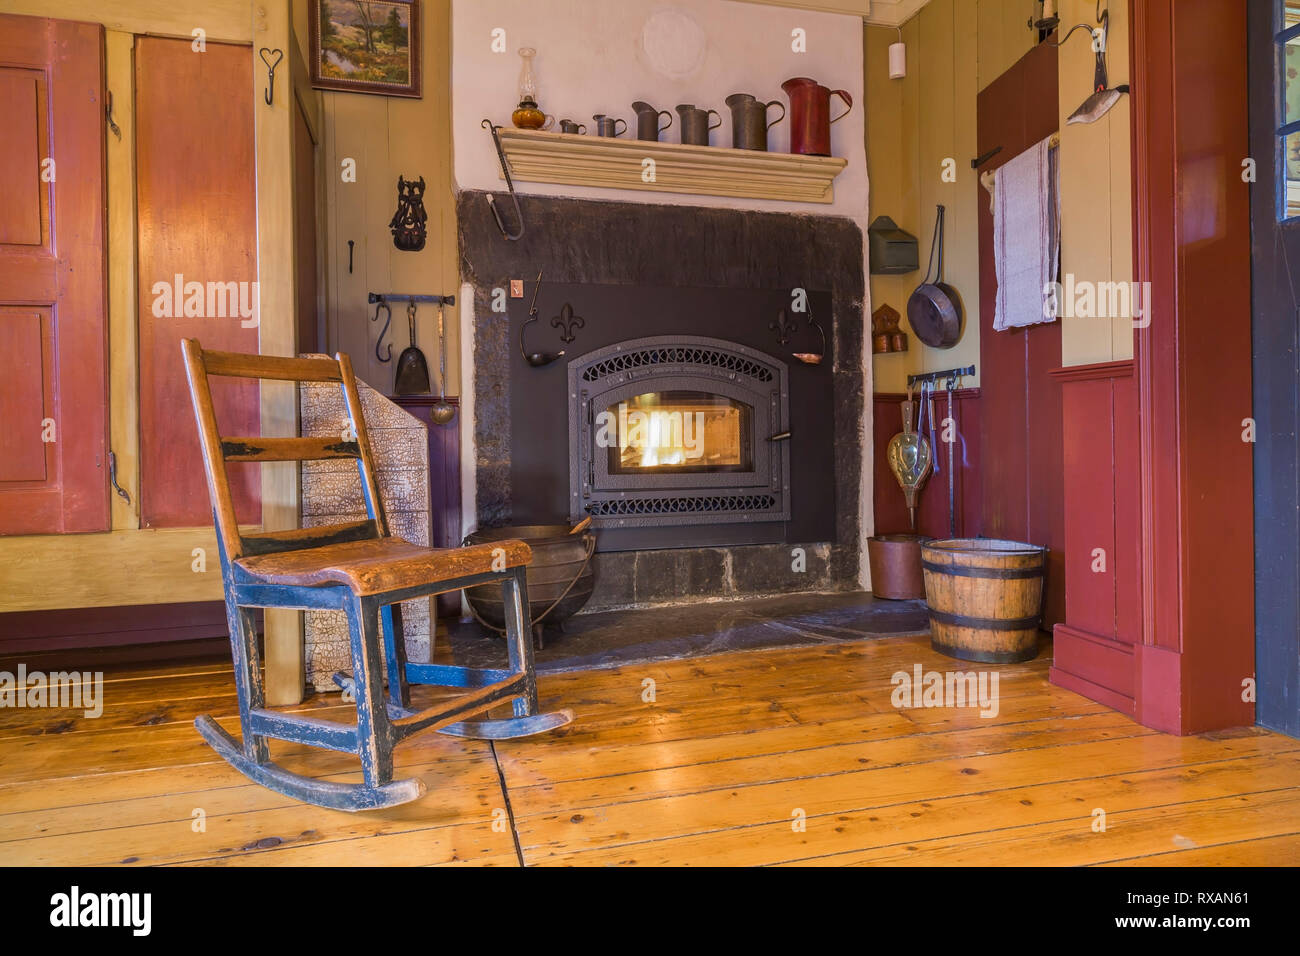 Picture of: Antique Wooden Rocking Chair Next To Black Cast Iron Wood Burning Fireplace Surrounded By A Natural